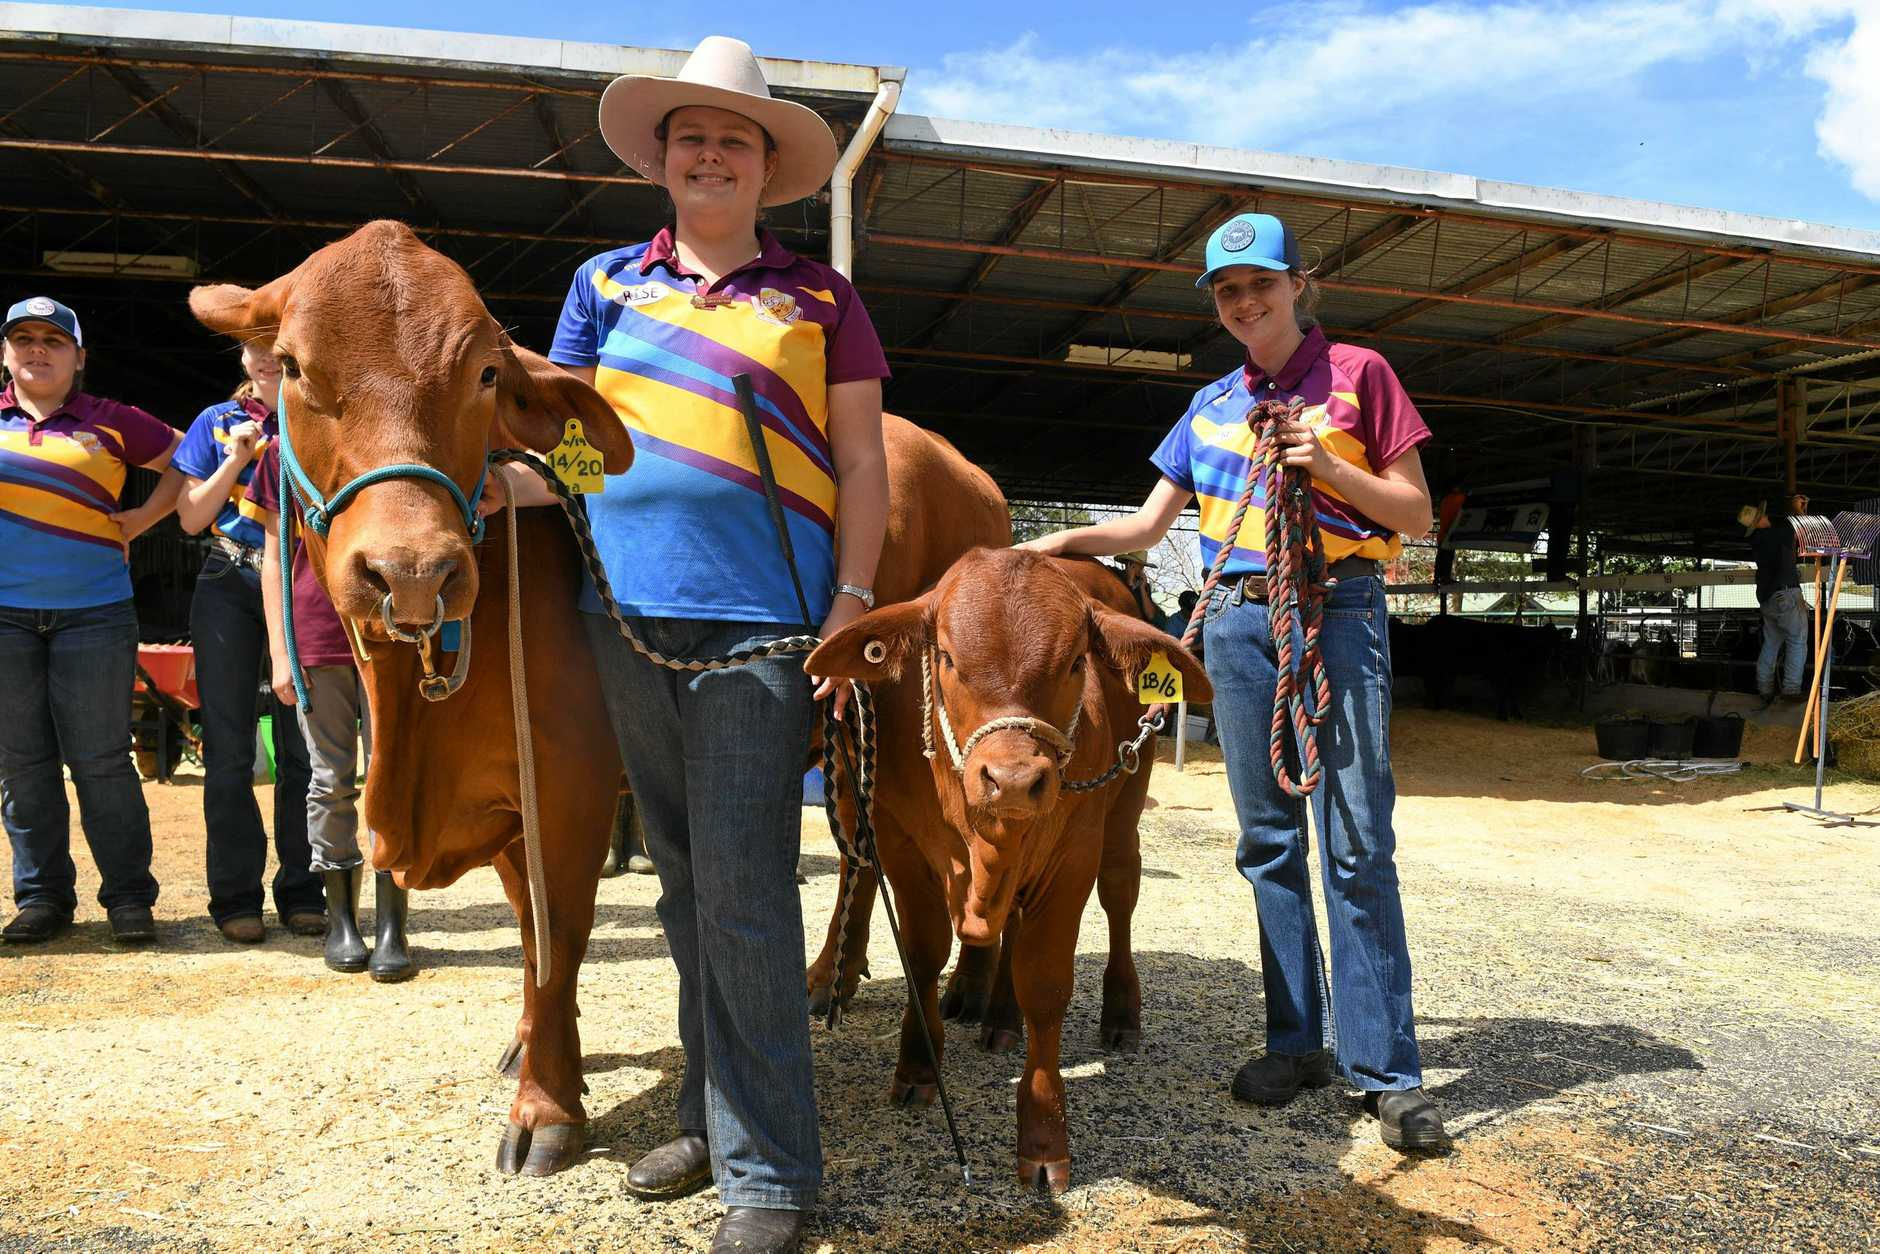 Chloe Andreassen, Brianna Van Doren from Gympie State High preparing there cow for show at the Gympie Showground